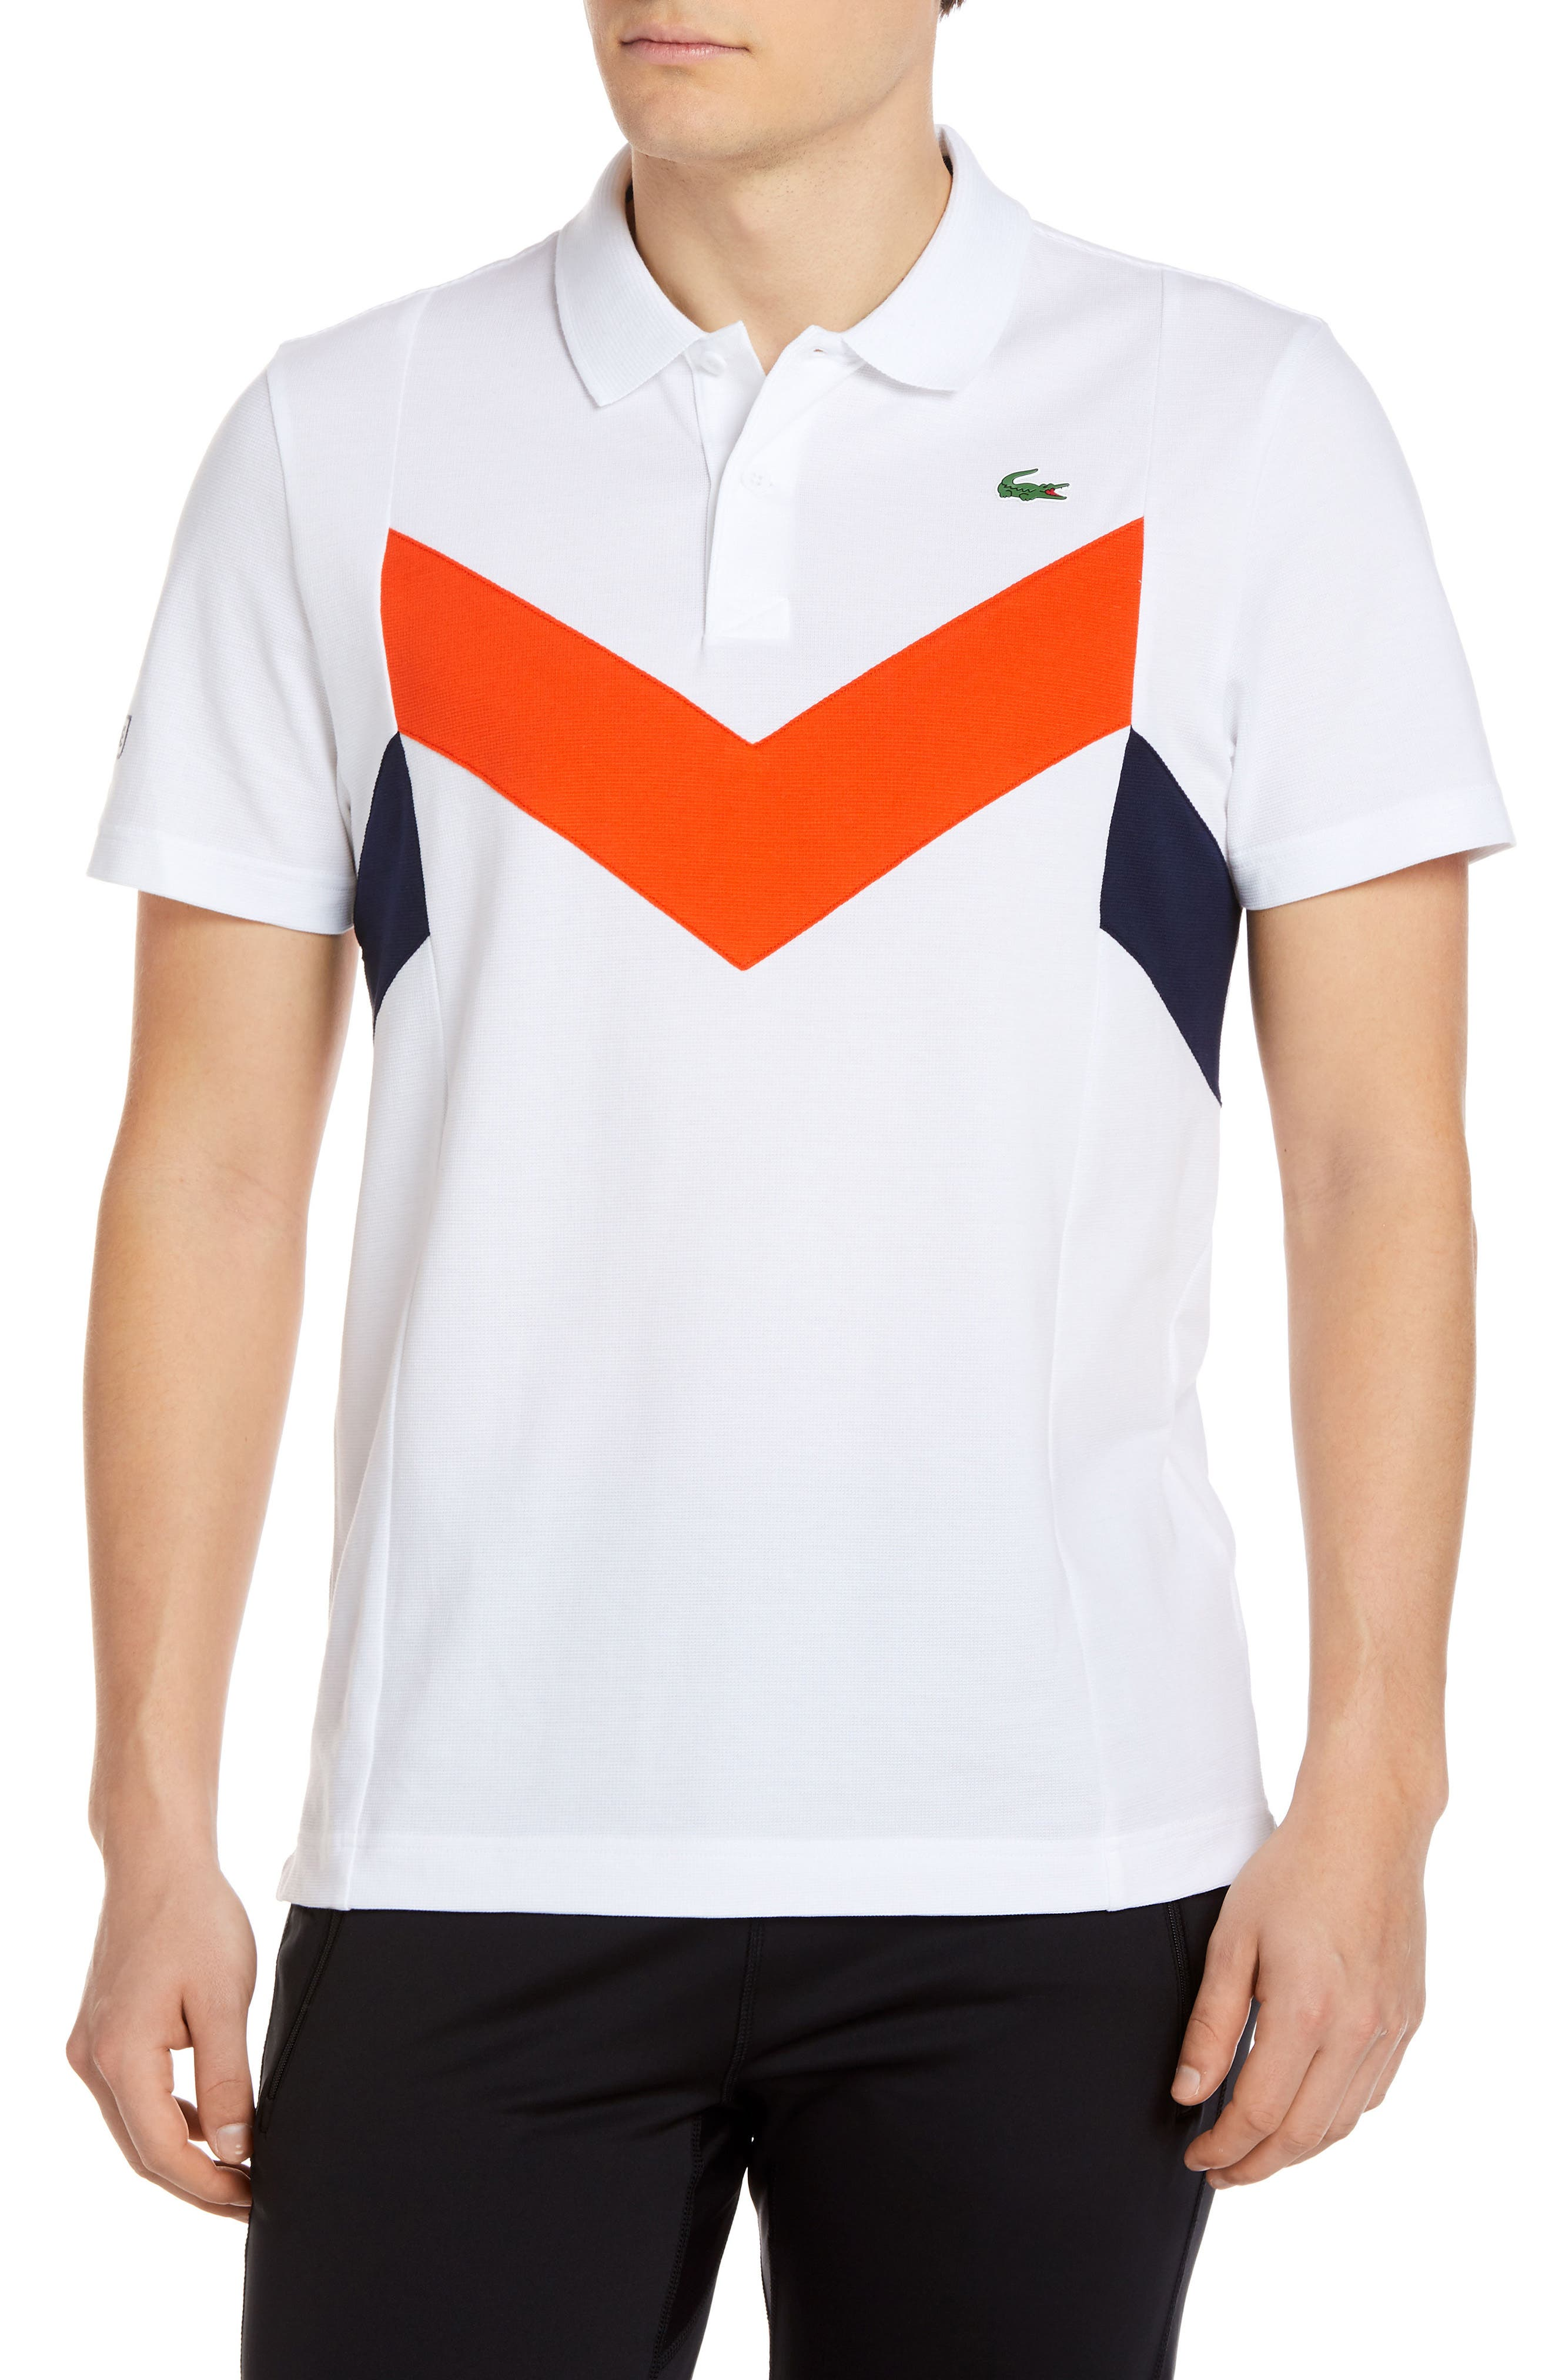 Alternate Image 1 Selected - Lacoste Chevron Colorblocked Polo